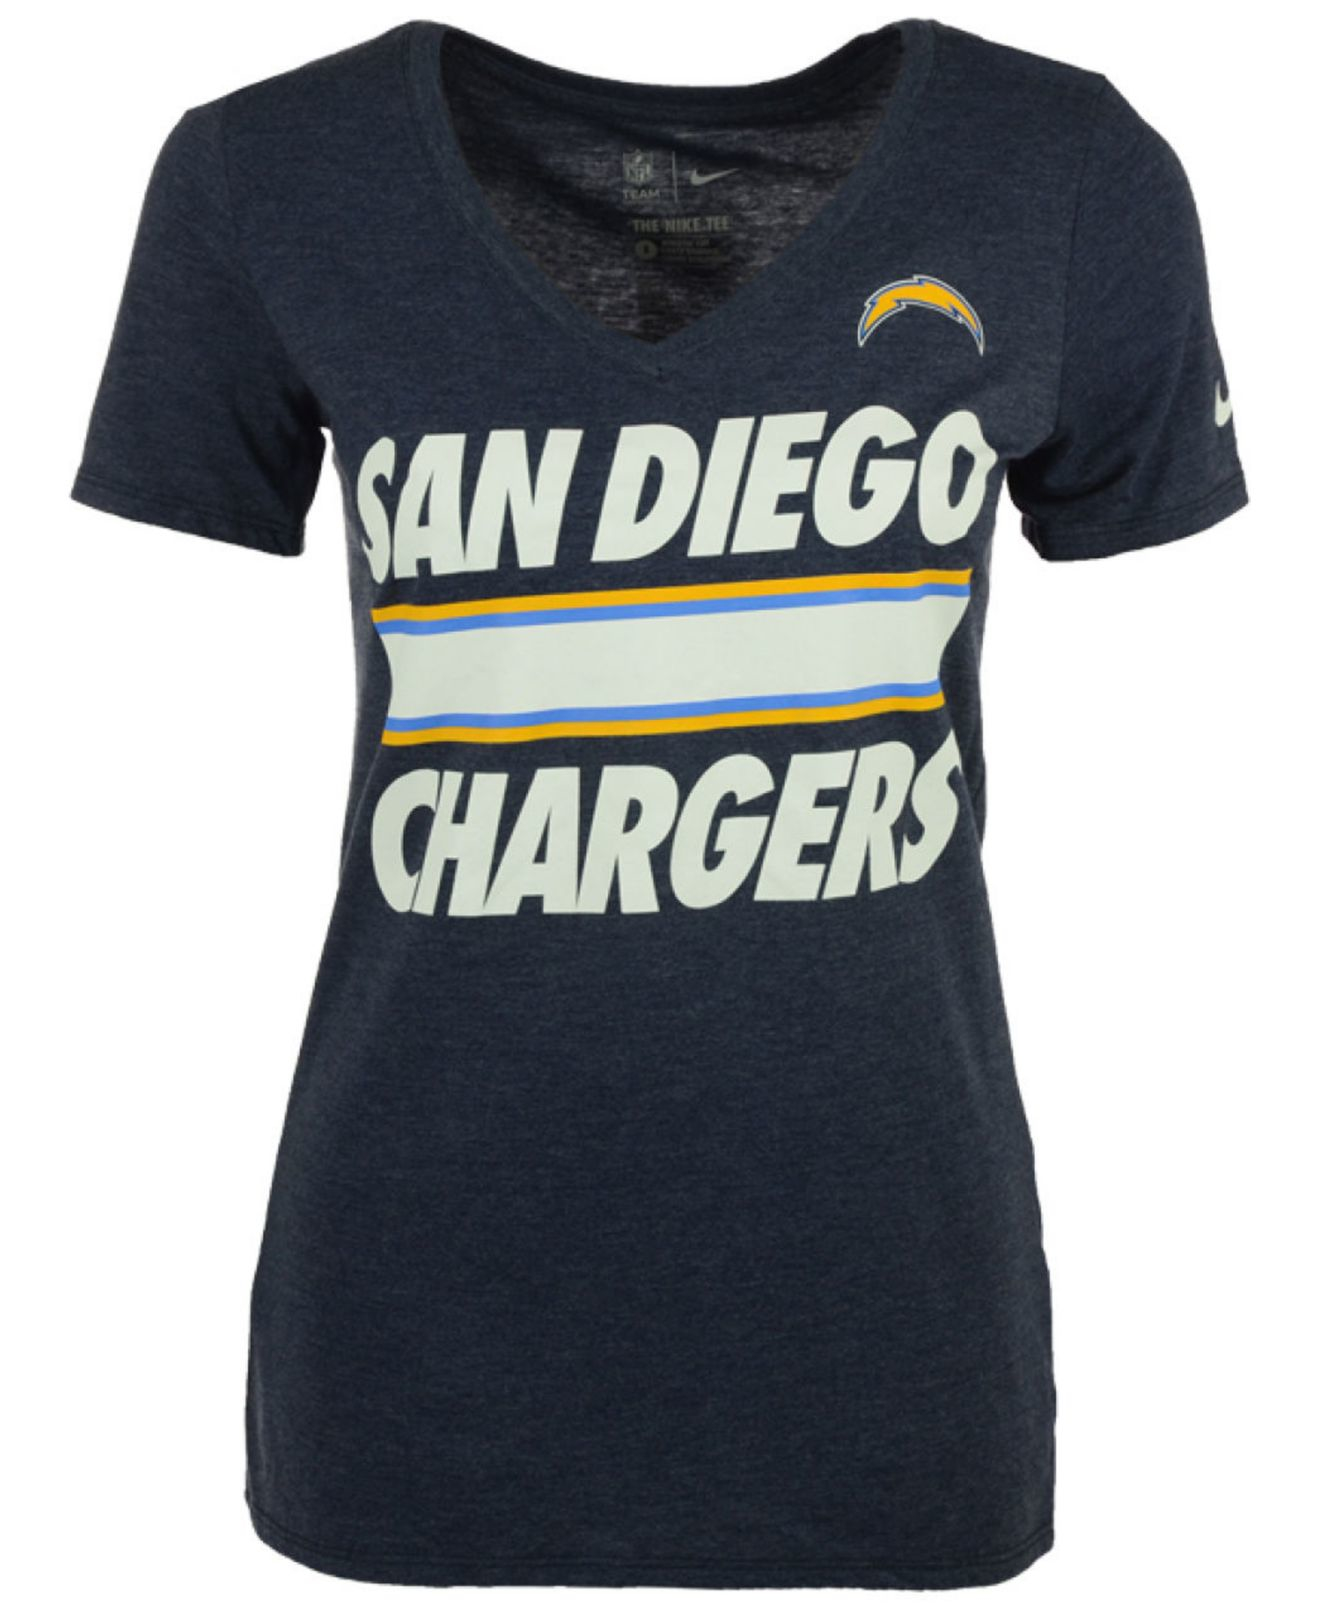 San Diego Chargers Clothing: Nike Women's San Diego Chargers Team Stripe T-shirt In